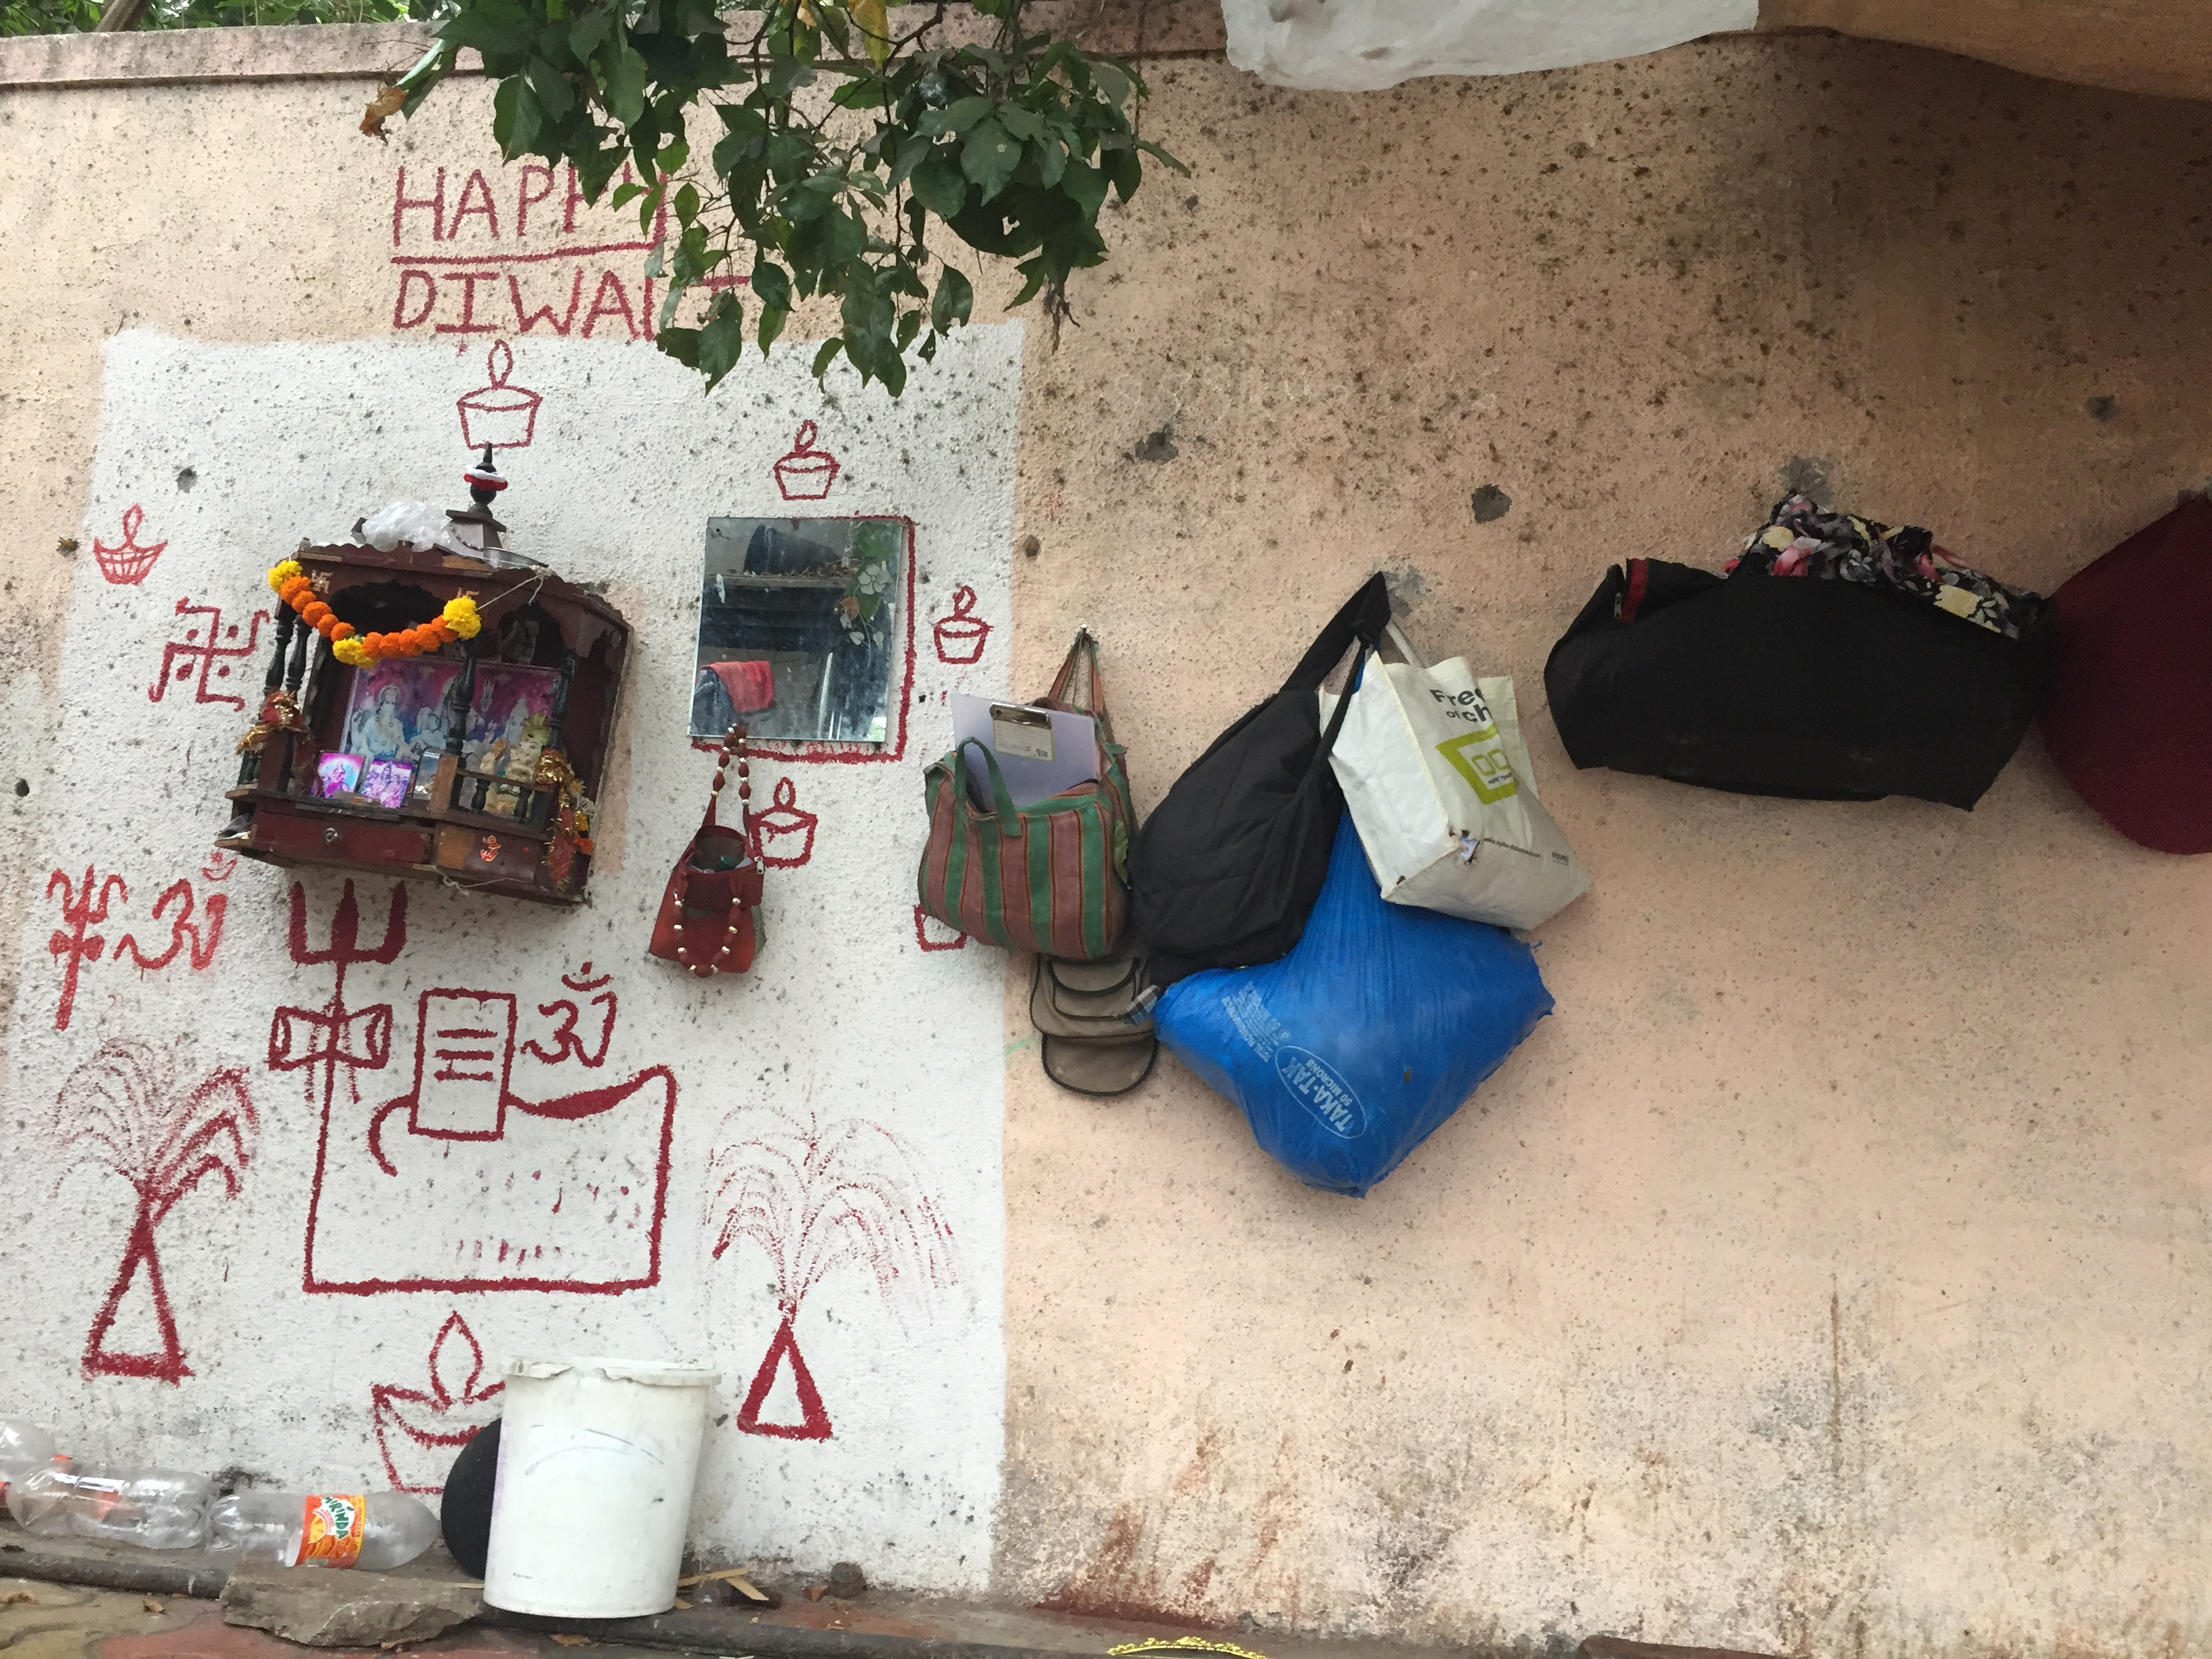 A footpath with a makeshift shrine and bags hung on the wall